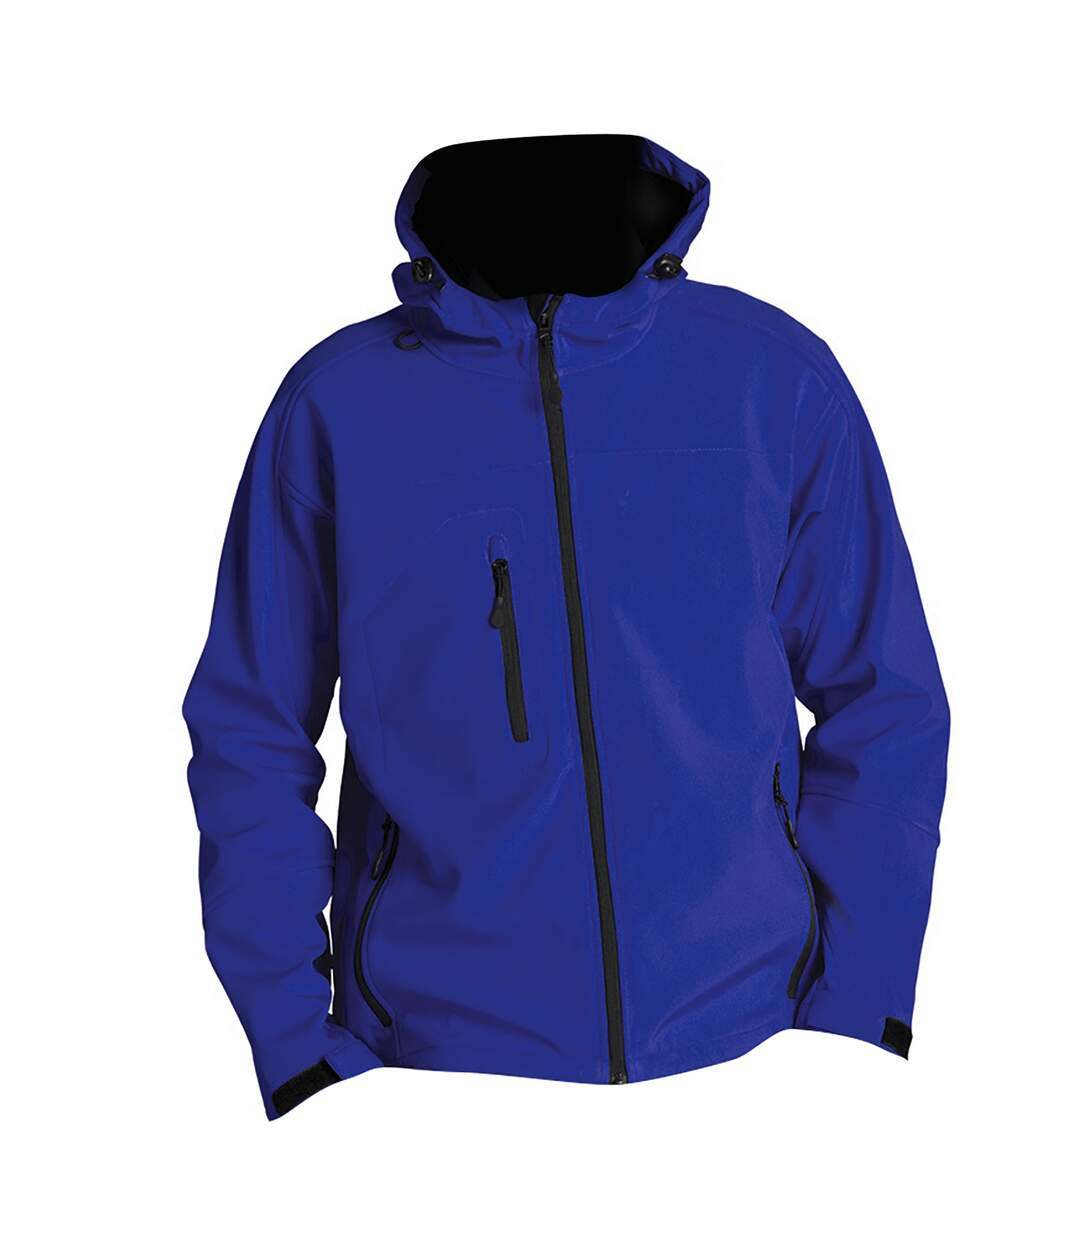 SOLS Mens Replay Hooded Soft Shell Jacket (Breathable, Windproof And Water Resistant) (Royal Blue) - UTPC410